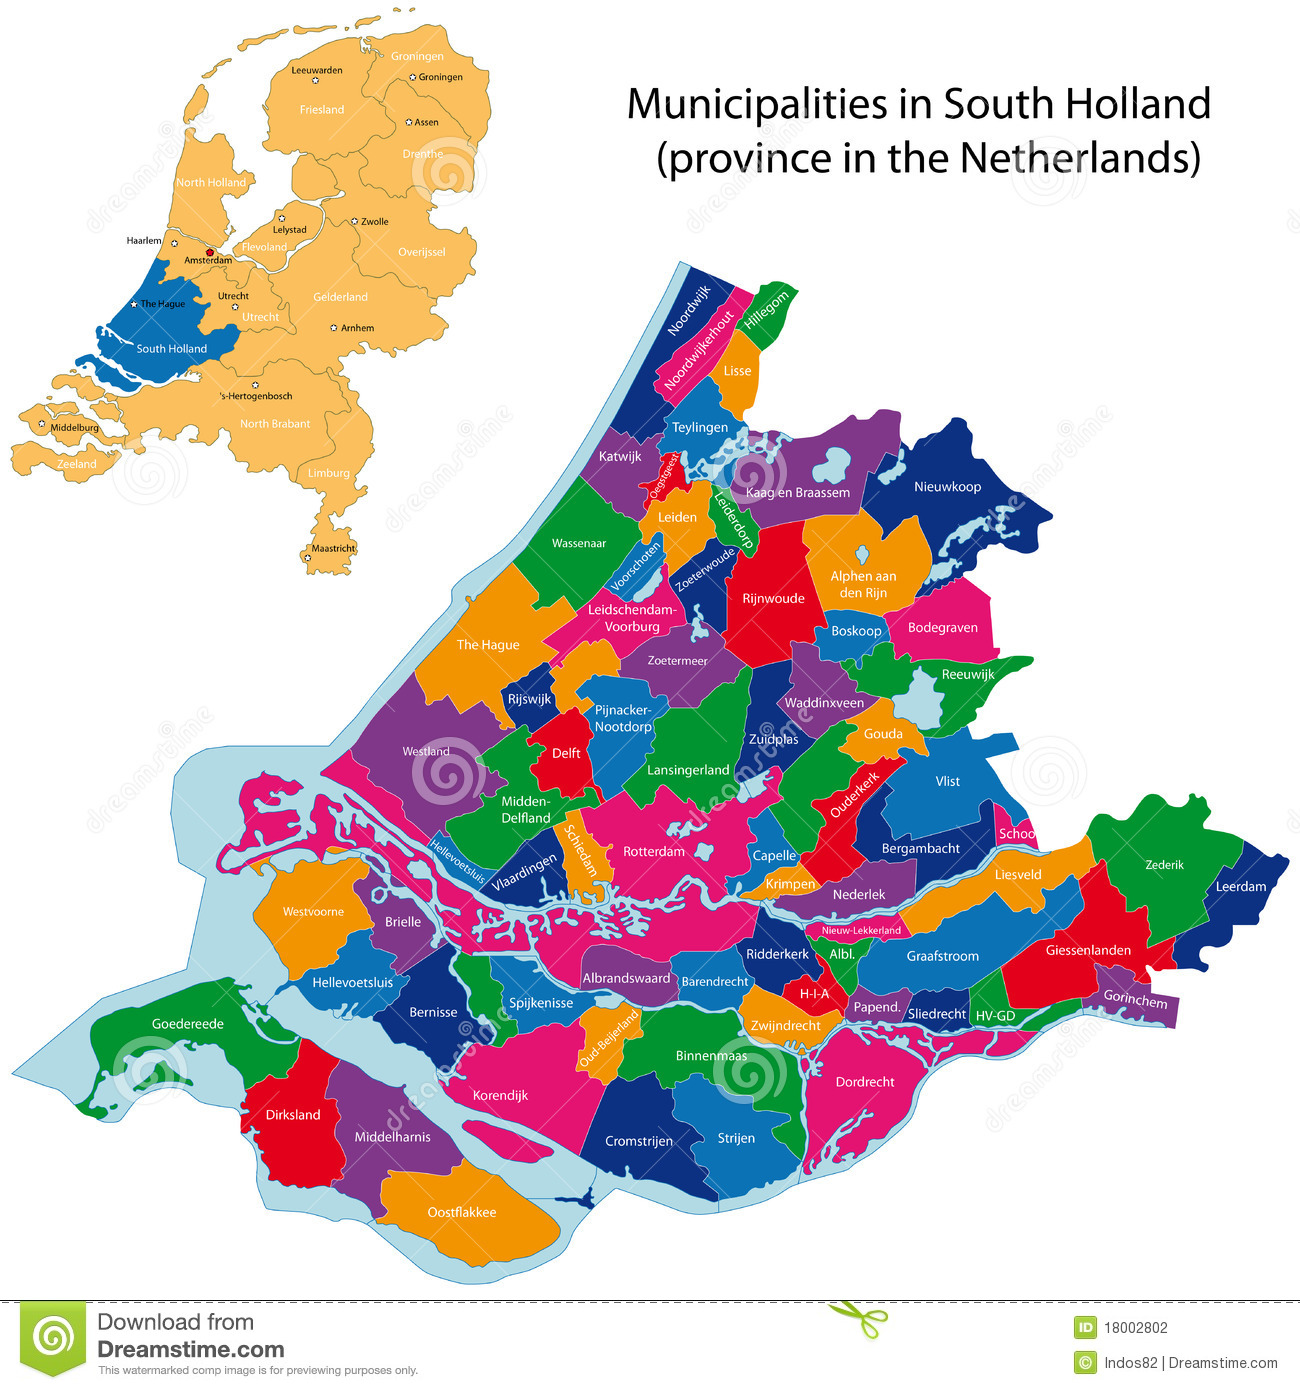 contour map with Stock Fotografie Zuid Holland Provincie Van Nederland Image18002802 on St clair map likewise Stock Photography Fruits Background Frame Made Colorful Image34582682 additionally Stock Illustration Bracelet Coloring Page Useful As Book Kids Image52169242 also Nanjing Subway Map as well Stock Fotografie Zuid Holland Provincie Van Nederland Image18002802.